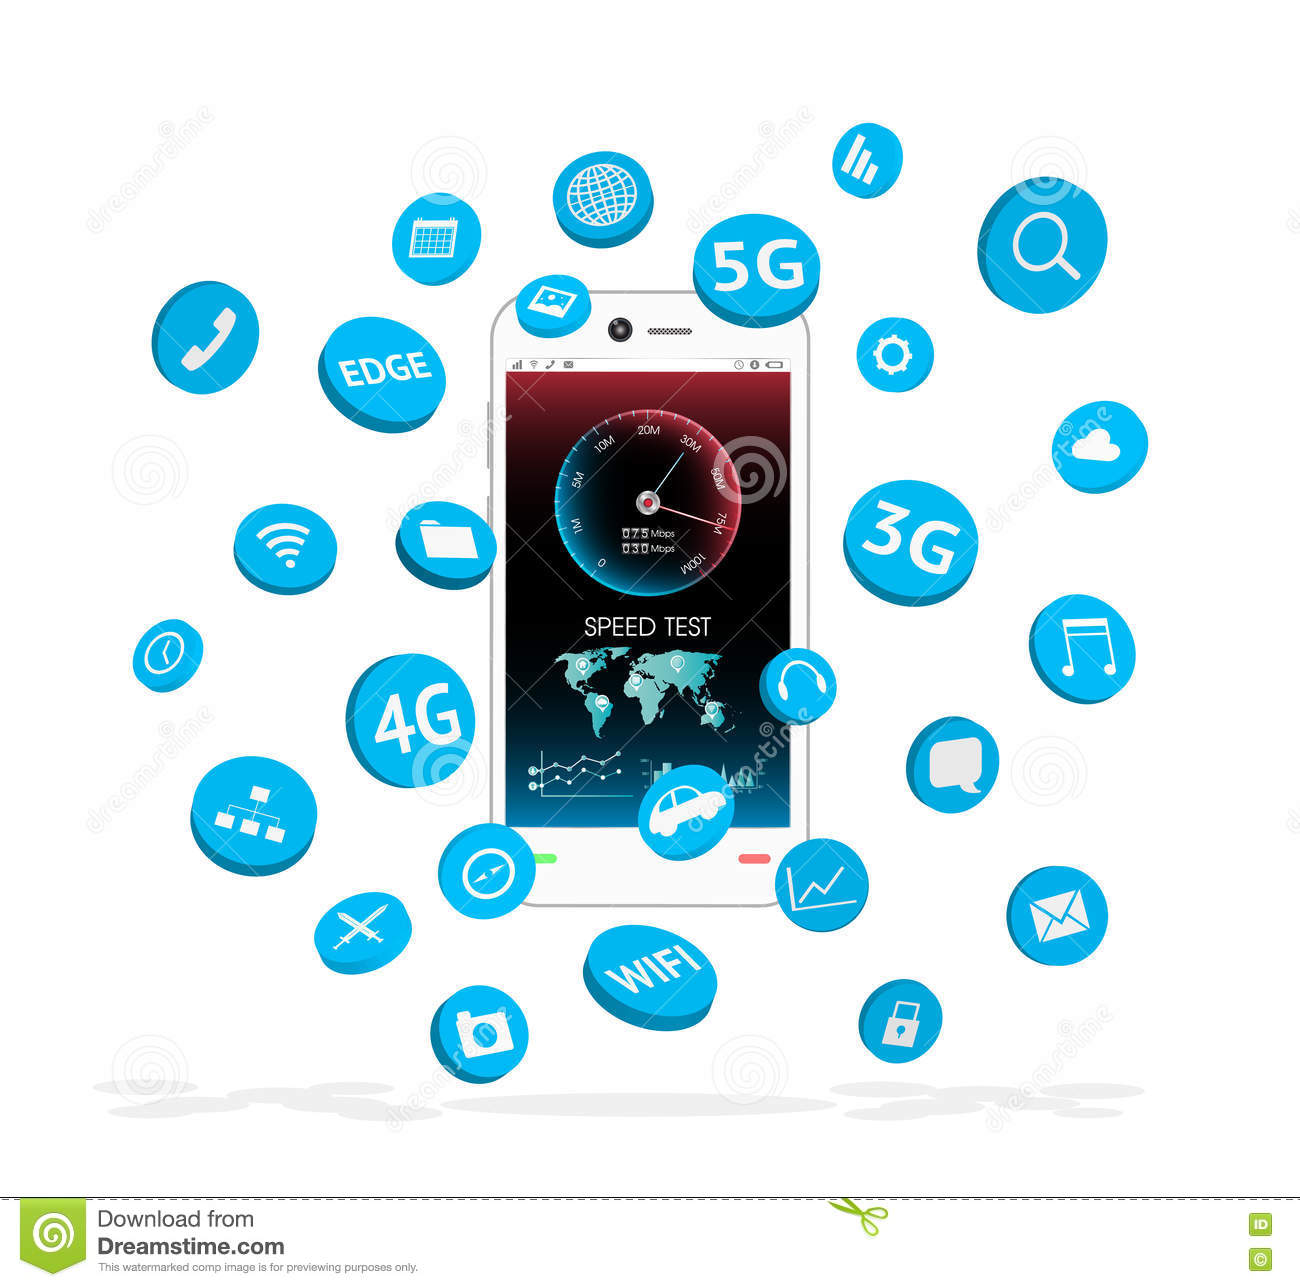 Smartphone with apps icon floating